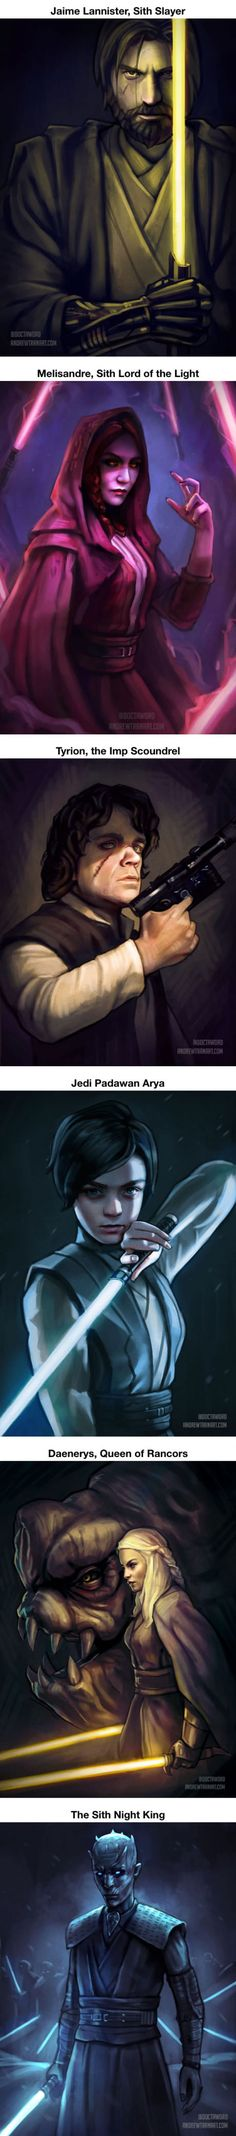 """""""Game Of Thrones"""" Characters In The Star Wars Universe. Who's your favorite?"""